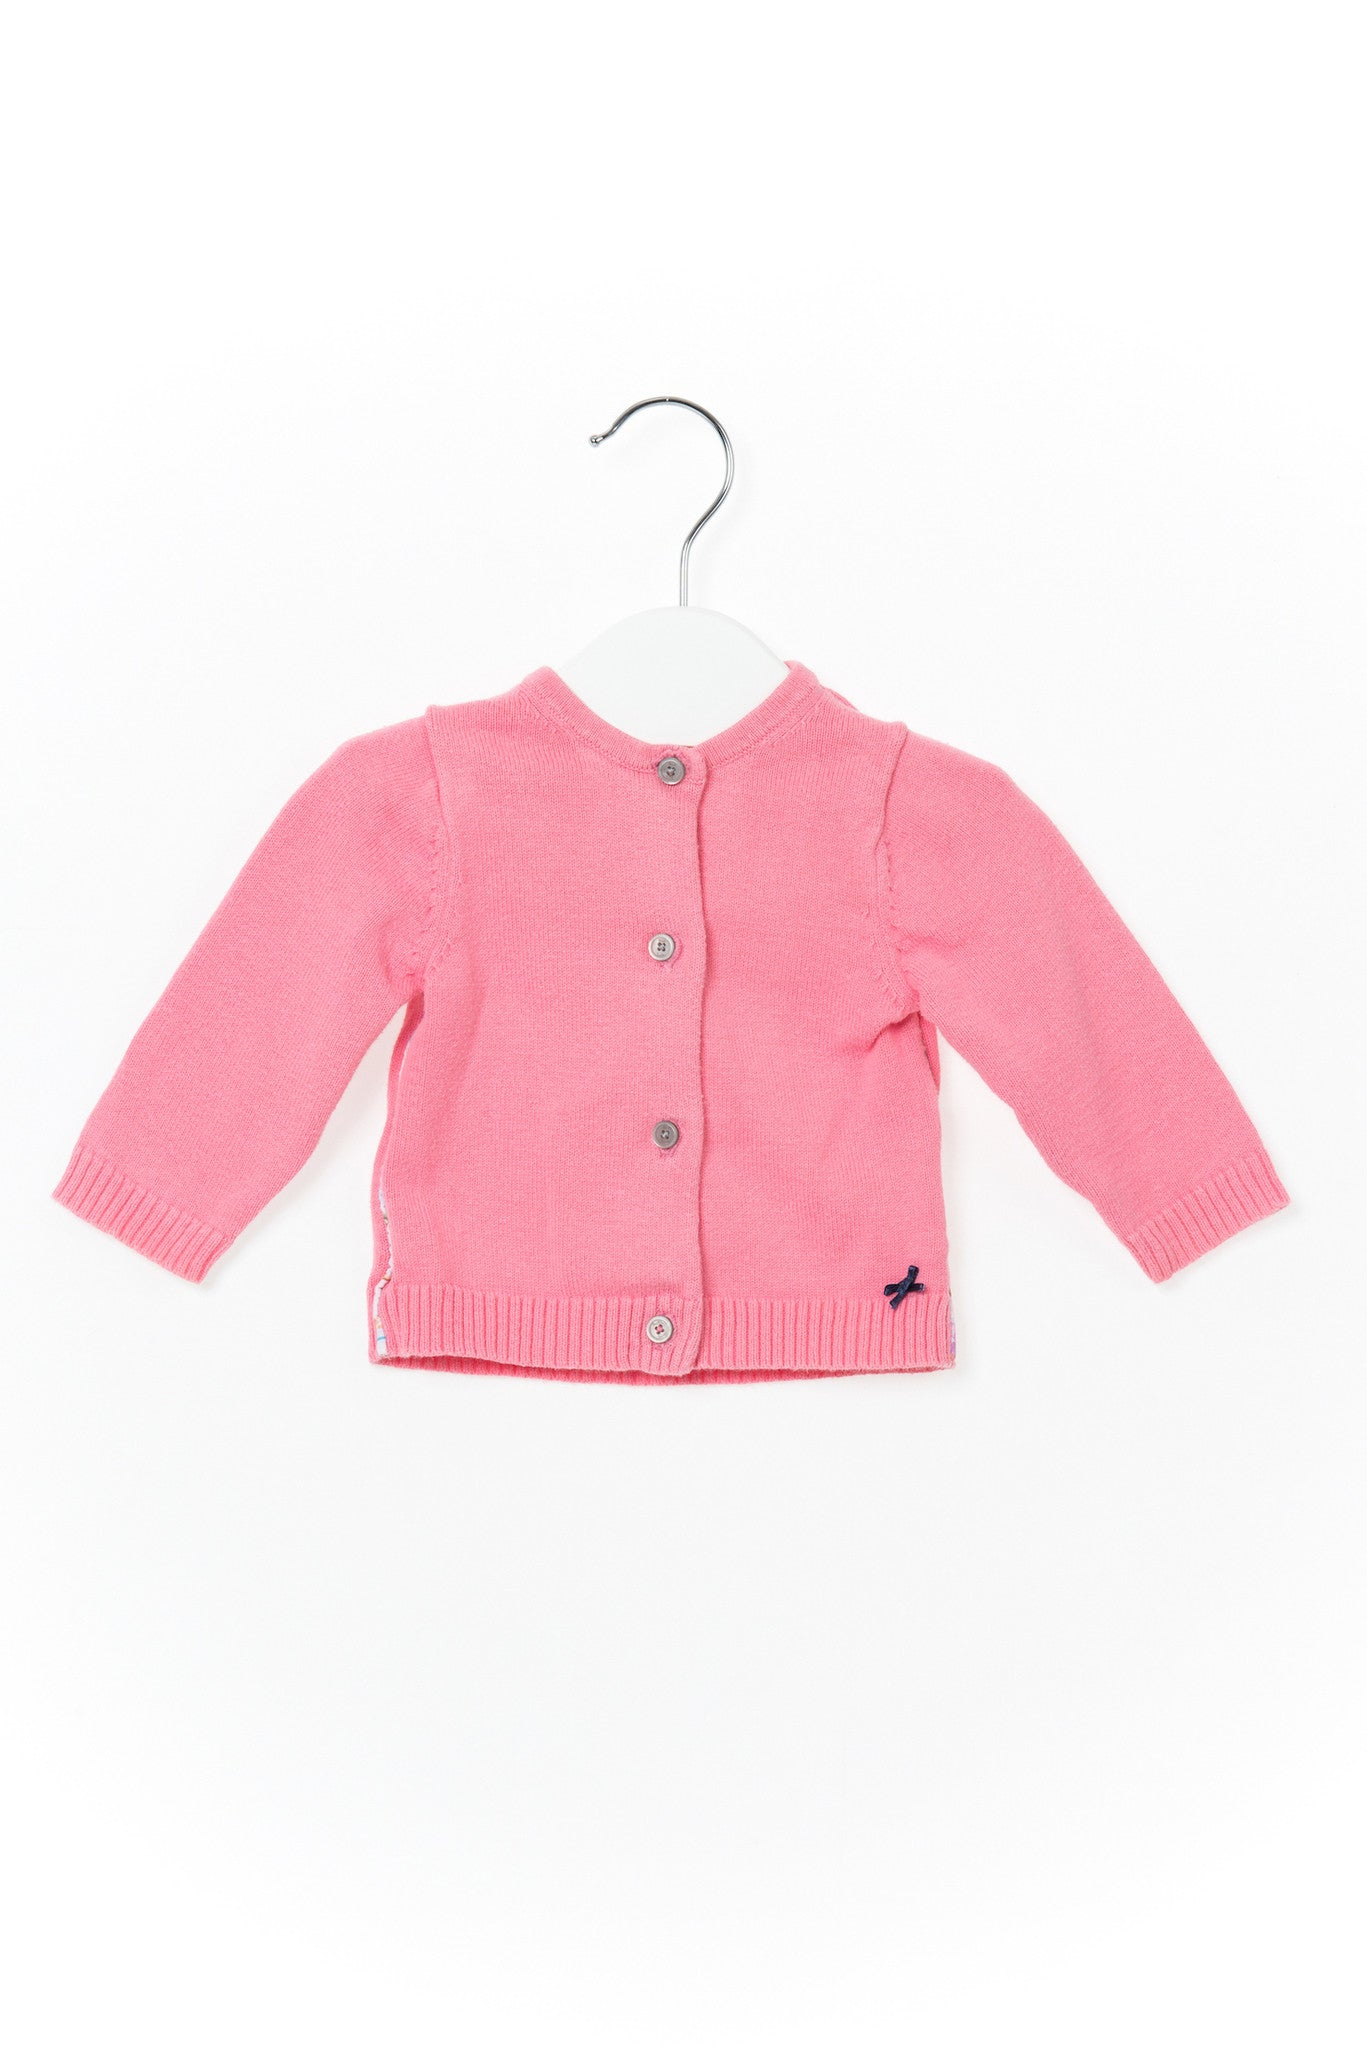 10001324 Paul Smith Baby~Cardigan 3-6M at Retykle